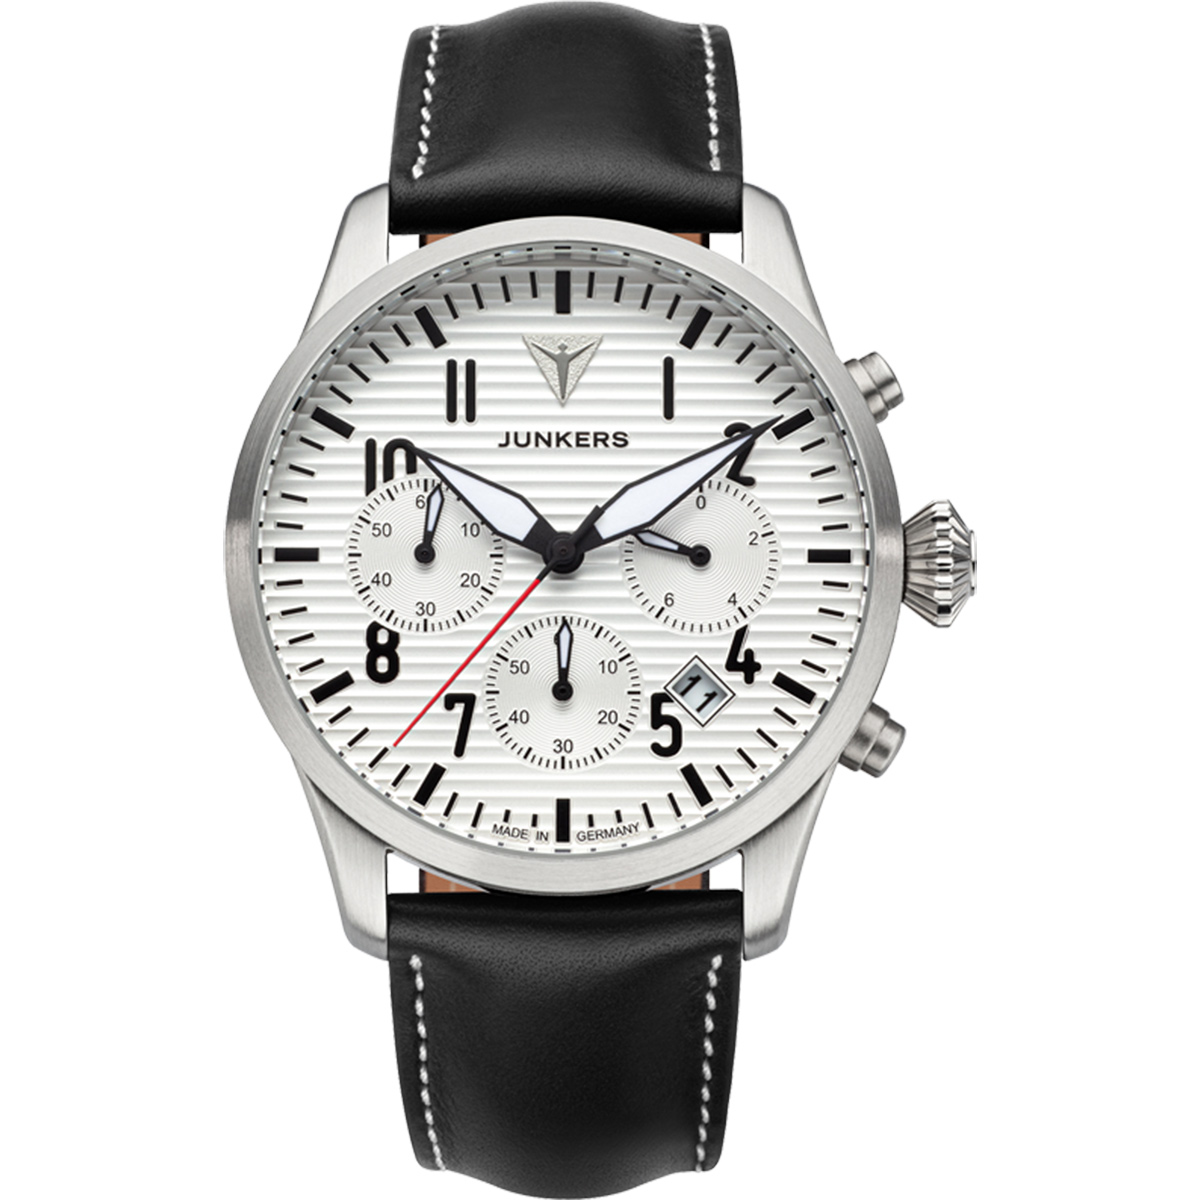 Junkers Flieger Chronograph 9.55.01.03